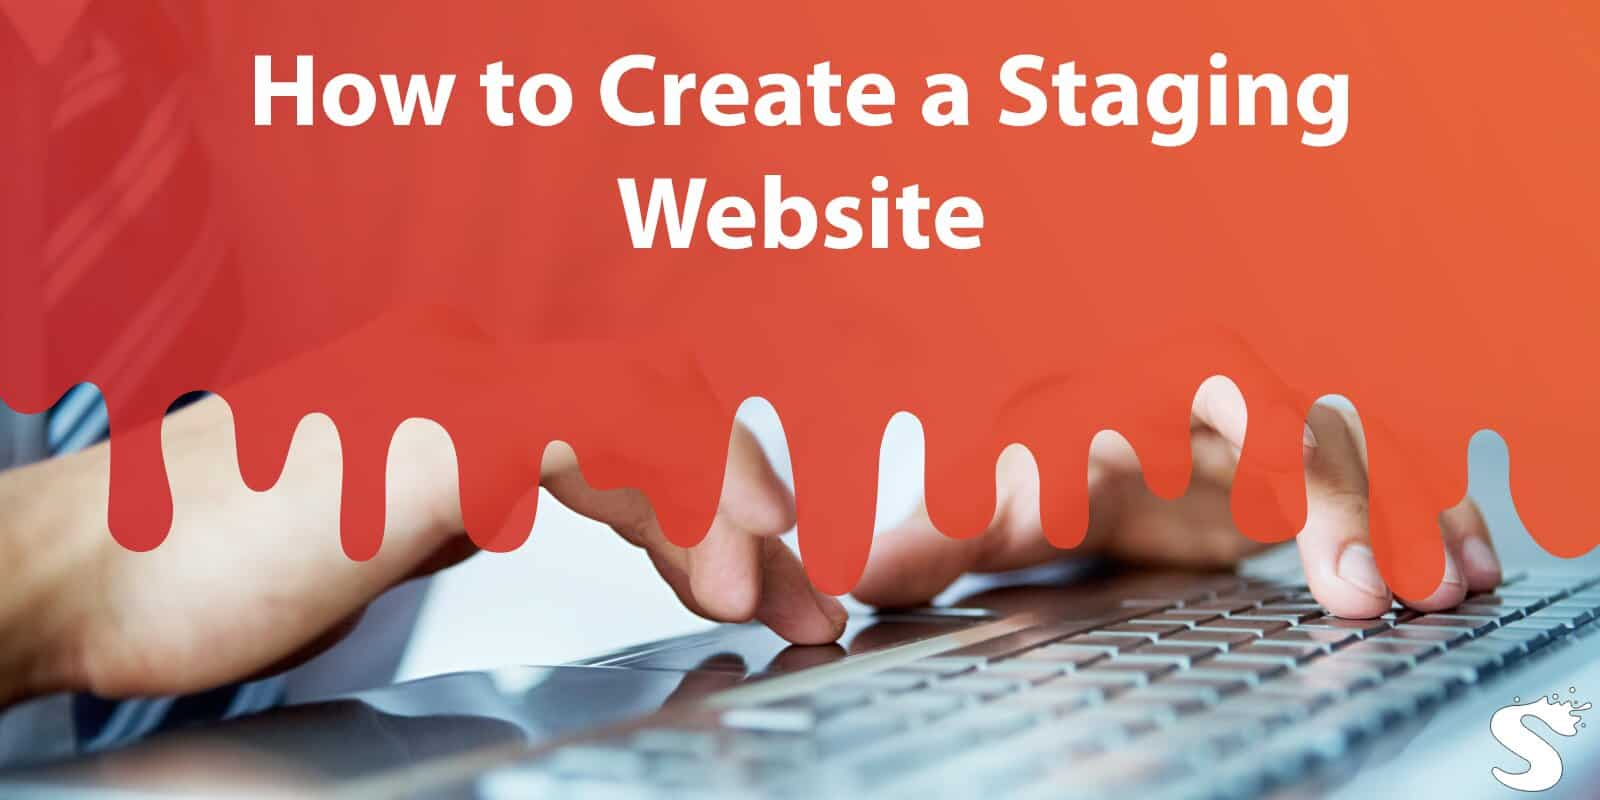 How to Create a Staging Website